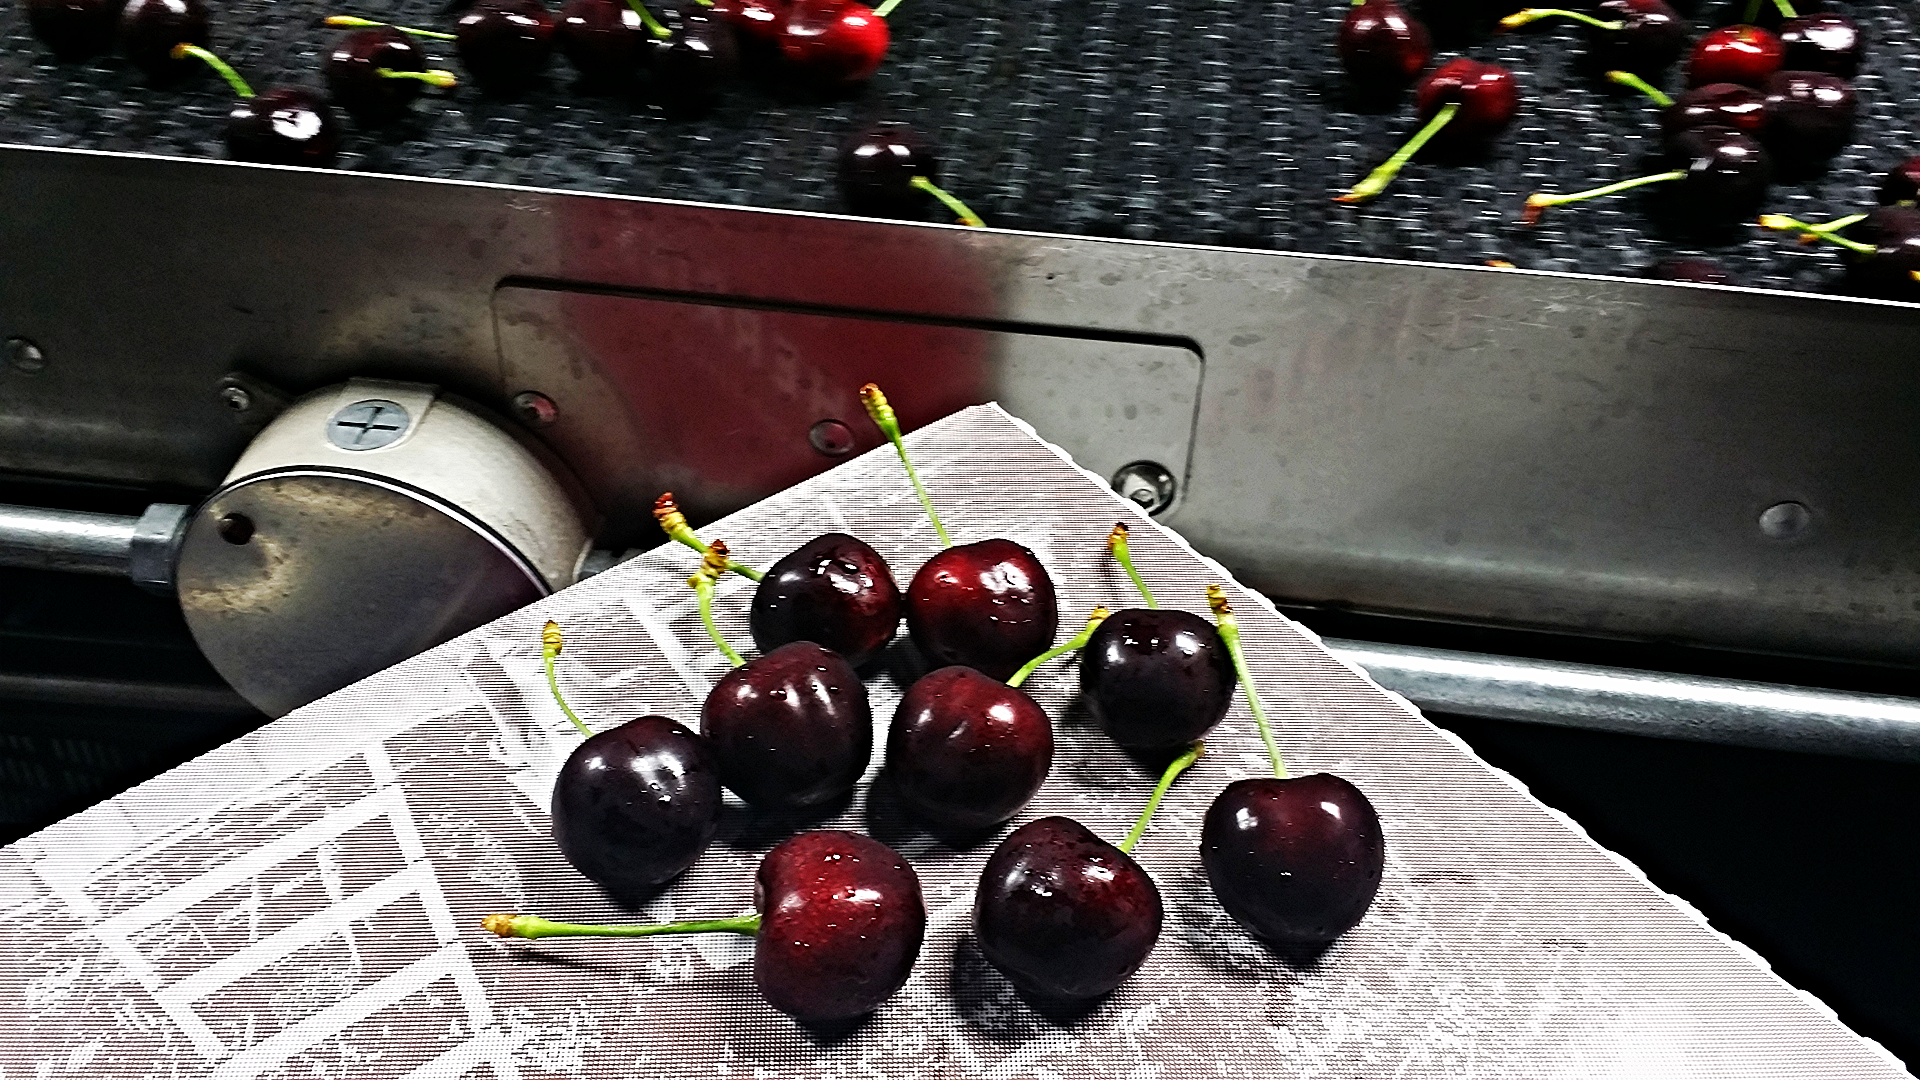 INSPECTING CHERRY QUALITY